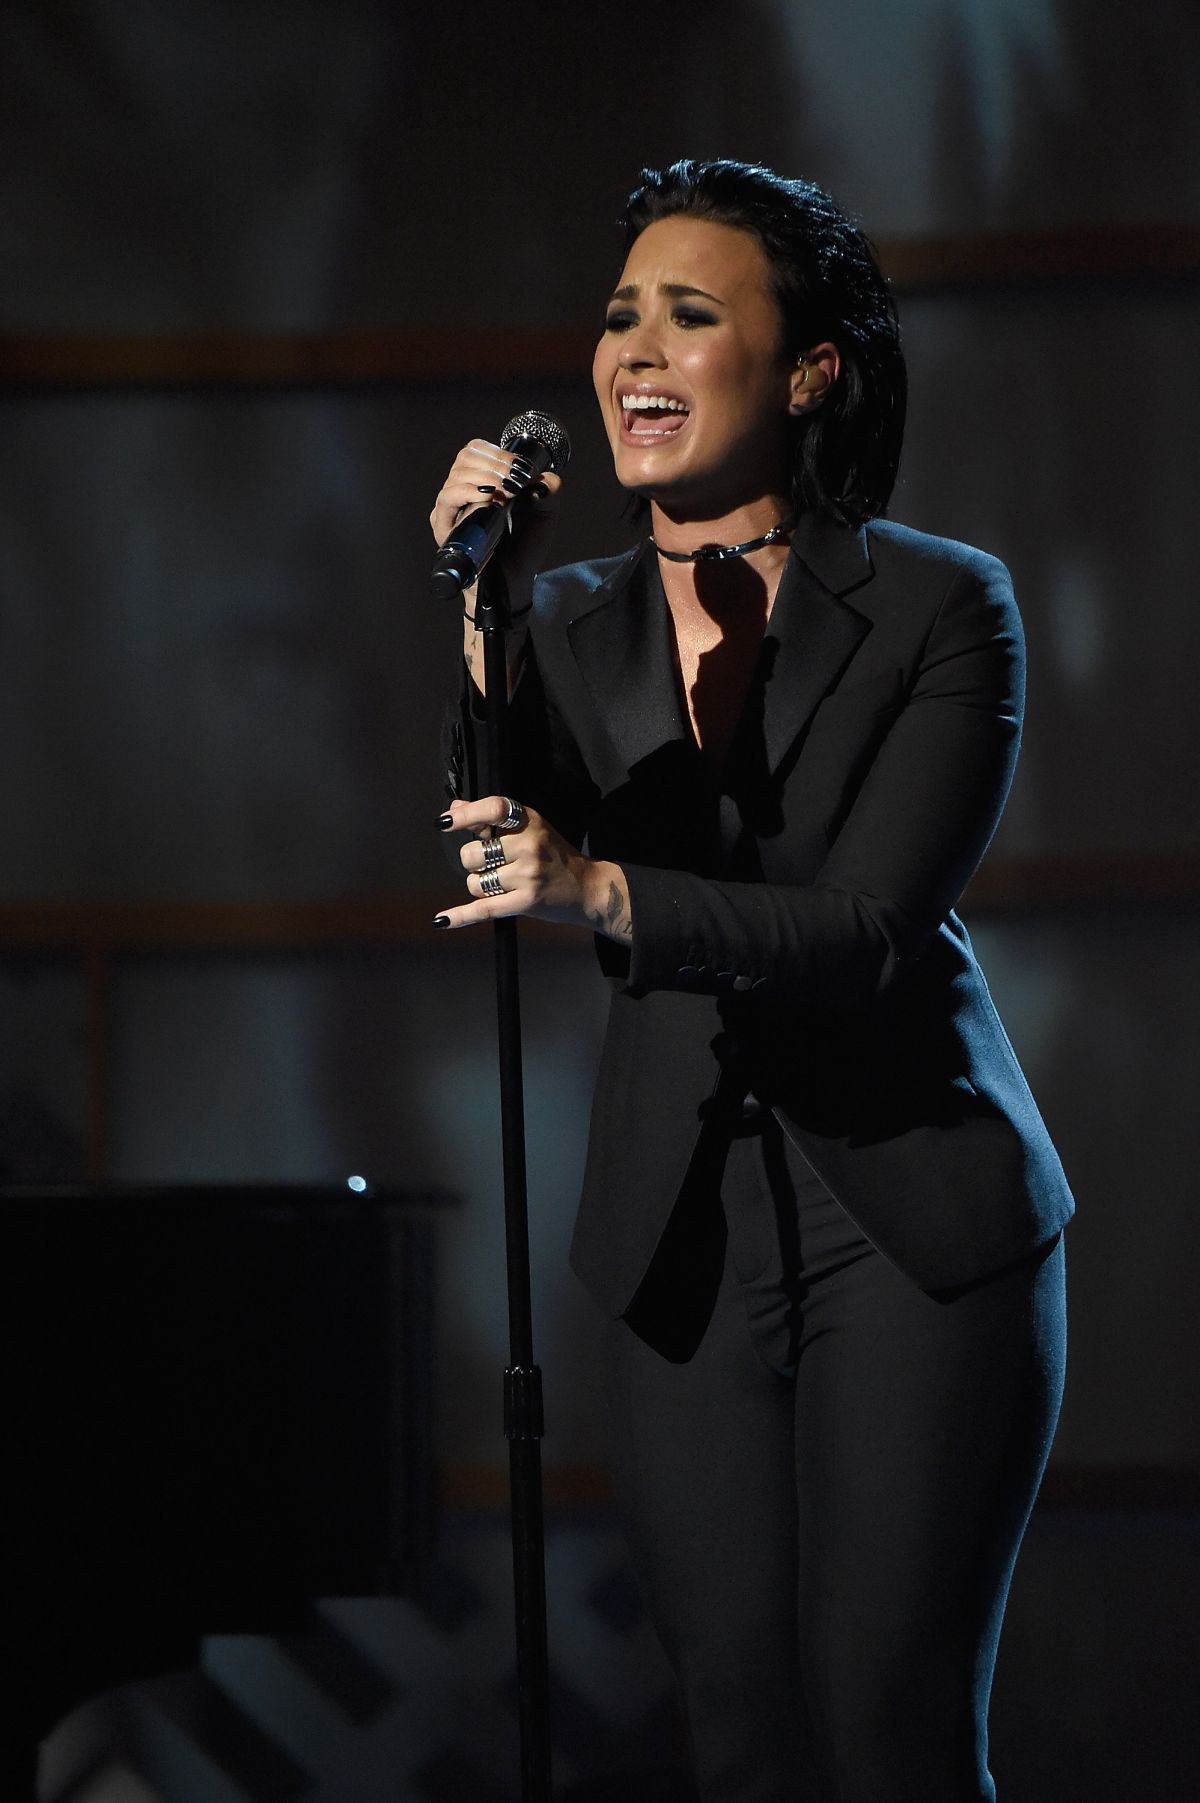 Demi Lovato Performs At Billboards Th Annual Women In Music Awards In New York